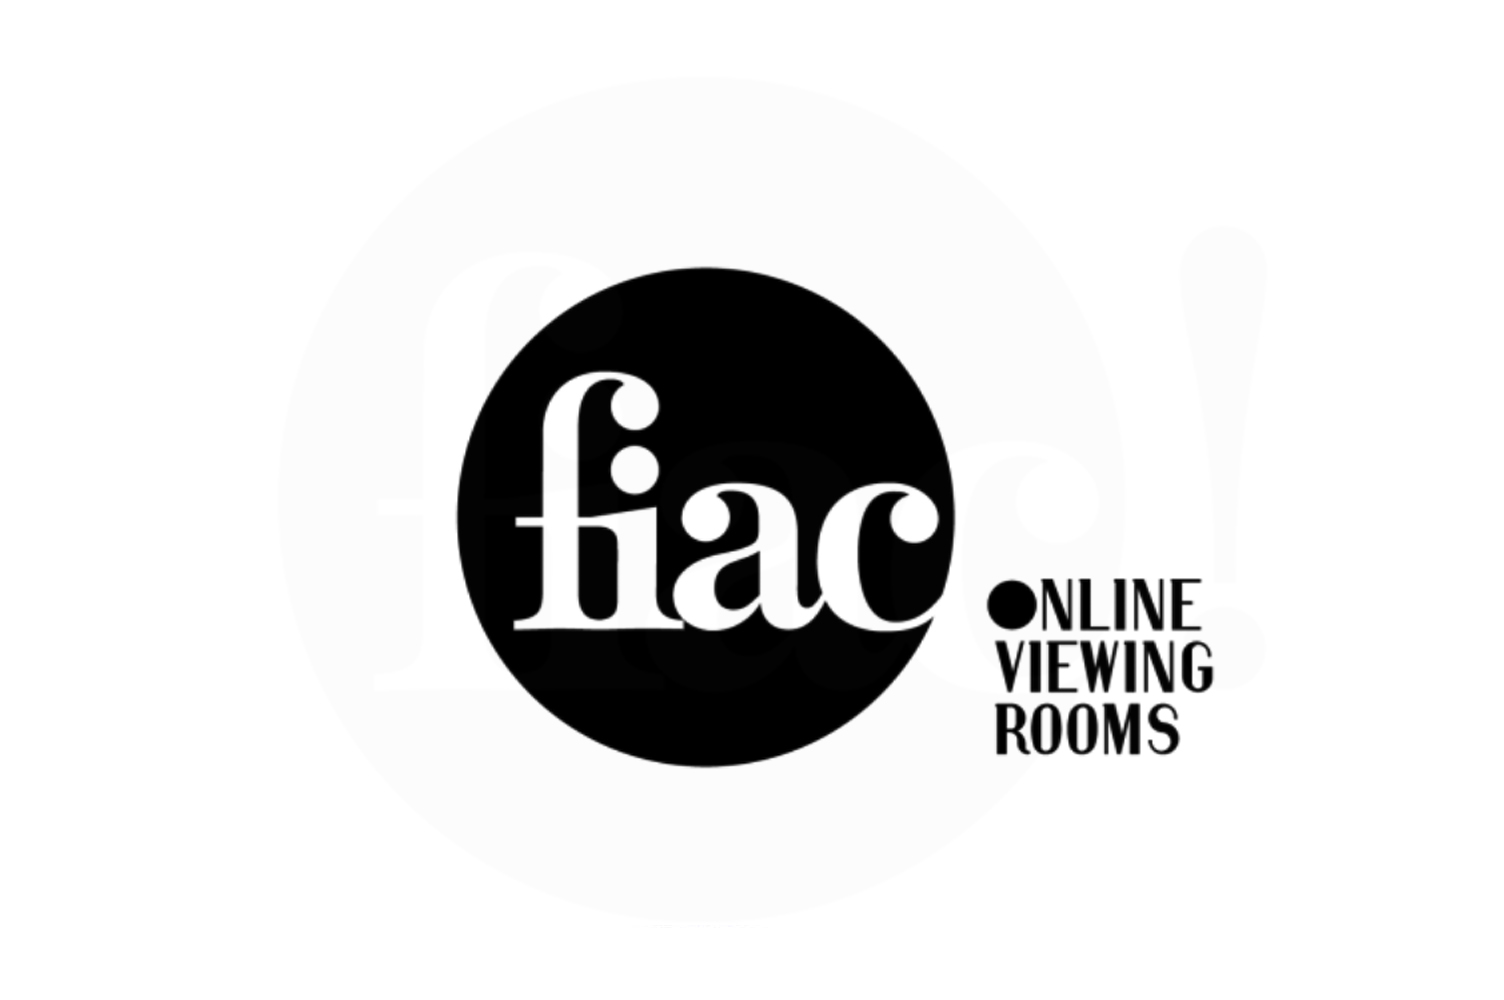 FIAC ONLINE VIEWING ROOMS -